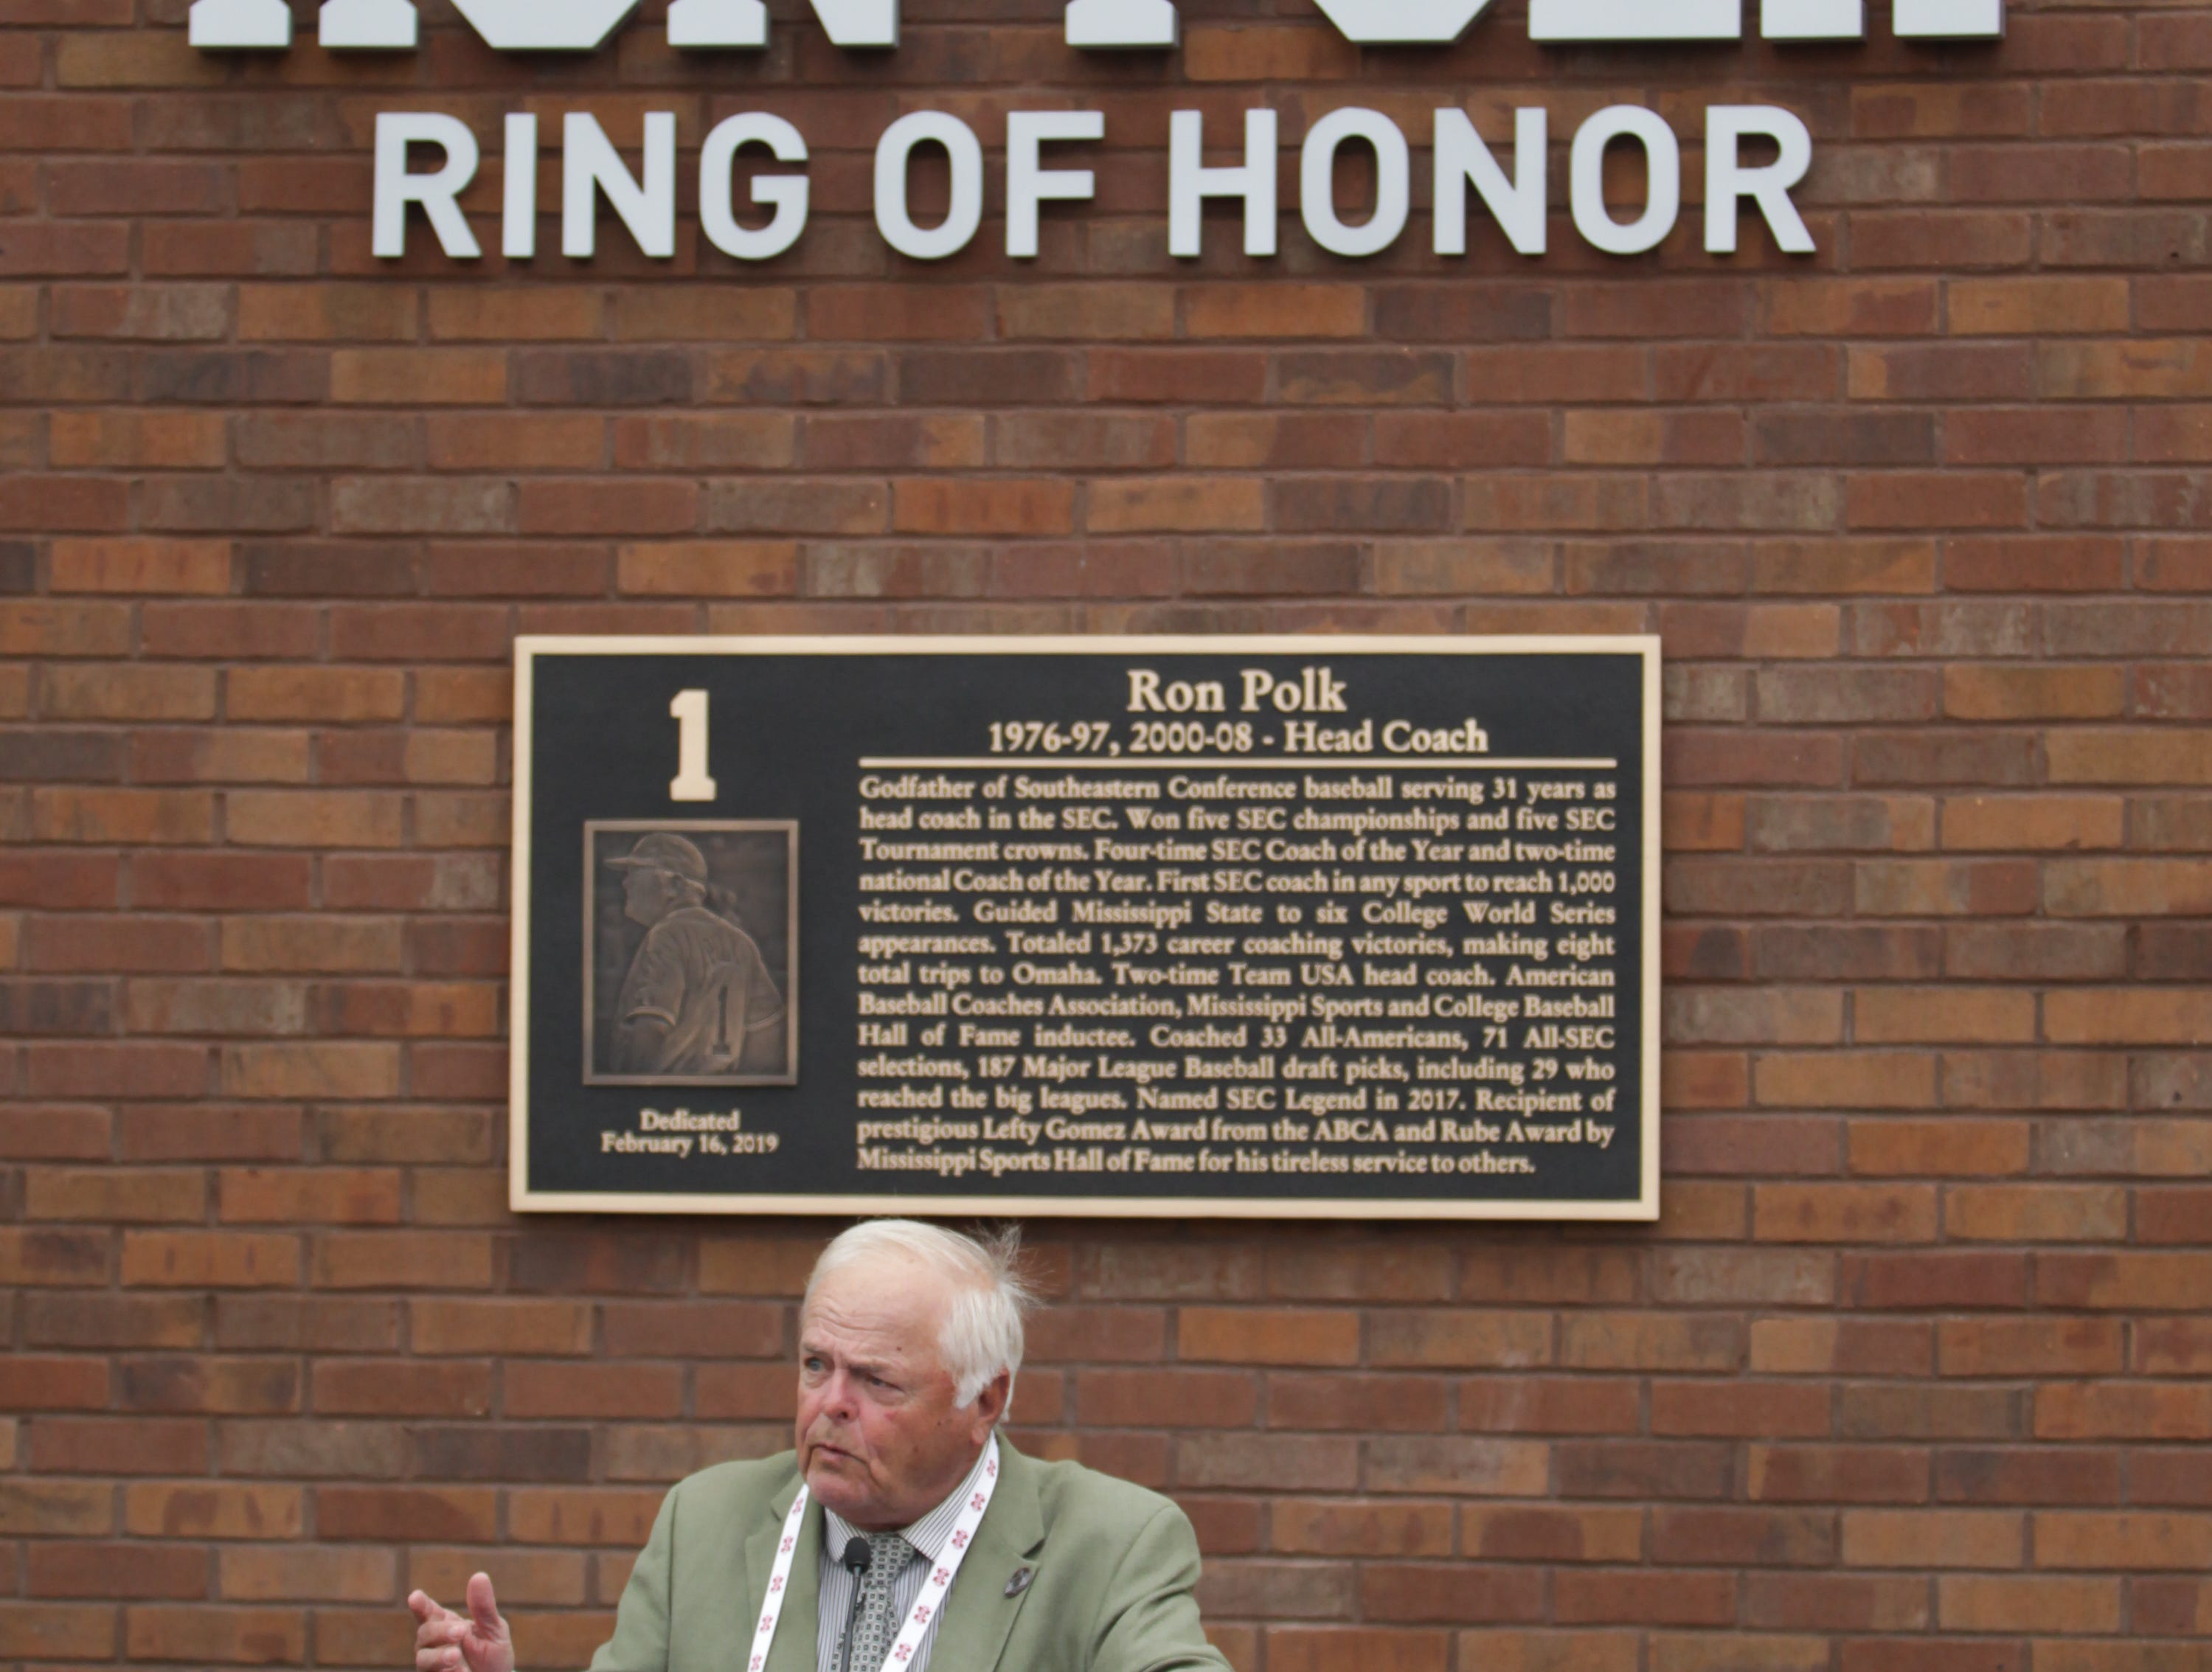 Former head coach Ron Polk speaks at the Ring Of Honor Inductee Ceremony. Mississippi State played Youngstown State on Saturday, February 16, 2019. Photo by Keith Warren